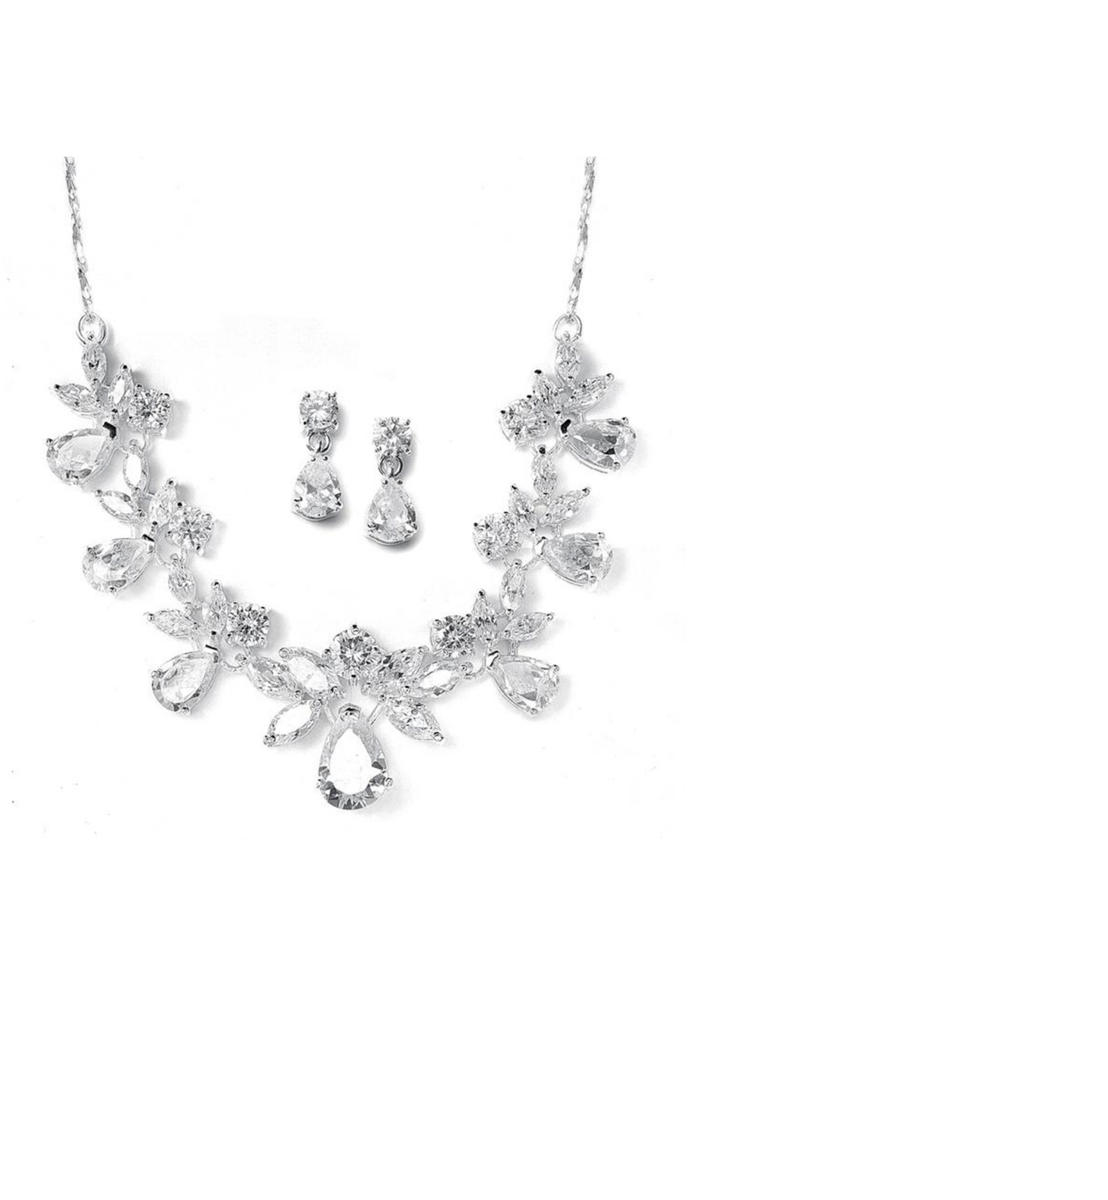 Cubic Zirconia Pear Shape Necklace Set